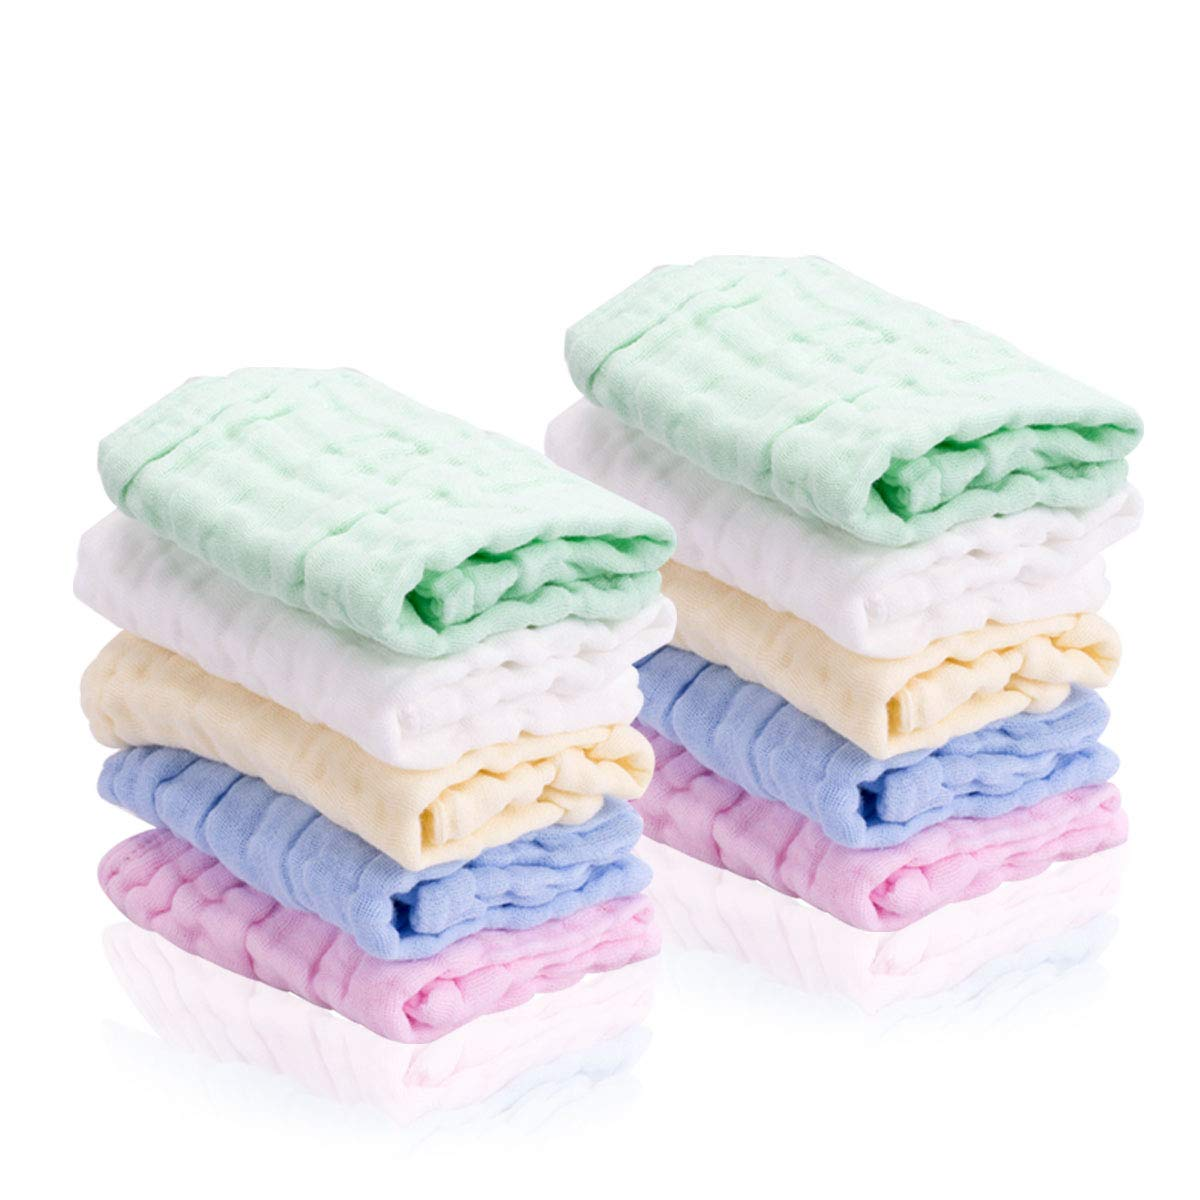 Baby Washcloths 10 Pack - Reusable Baby Muslin Squares Extra Soft Face/Shower Towels for Newborn Baby Girls Boys LIXFDT